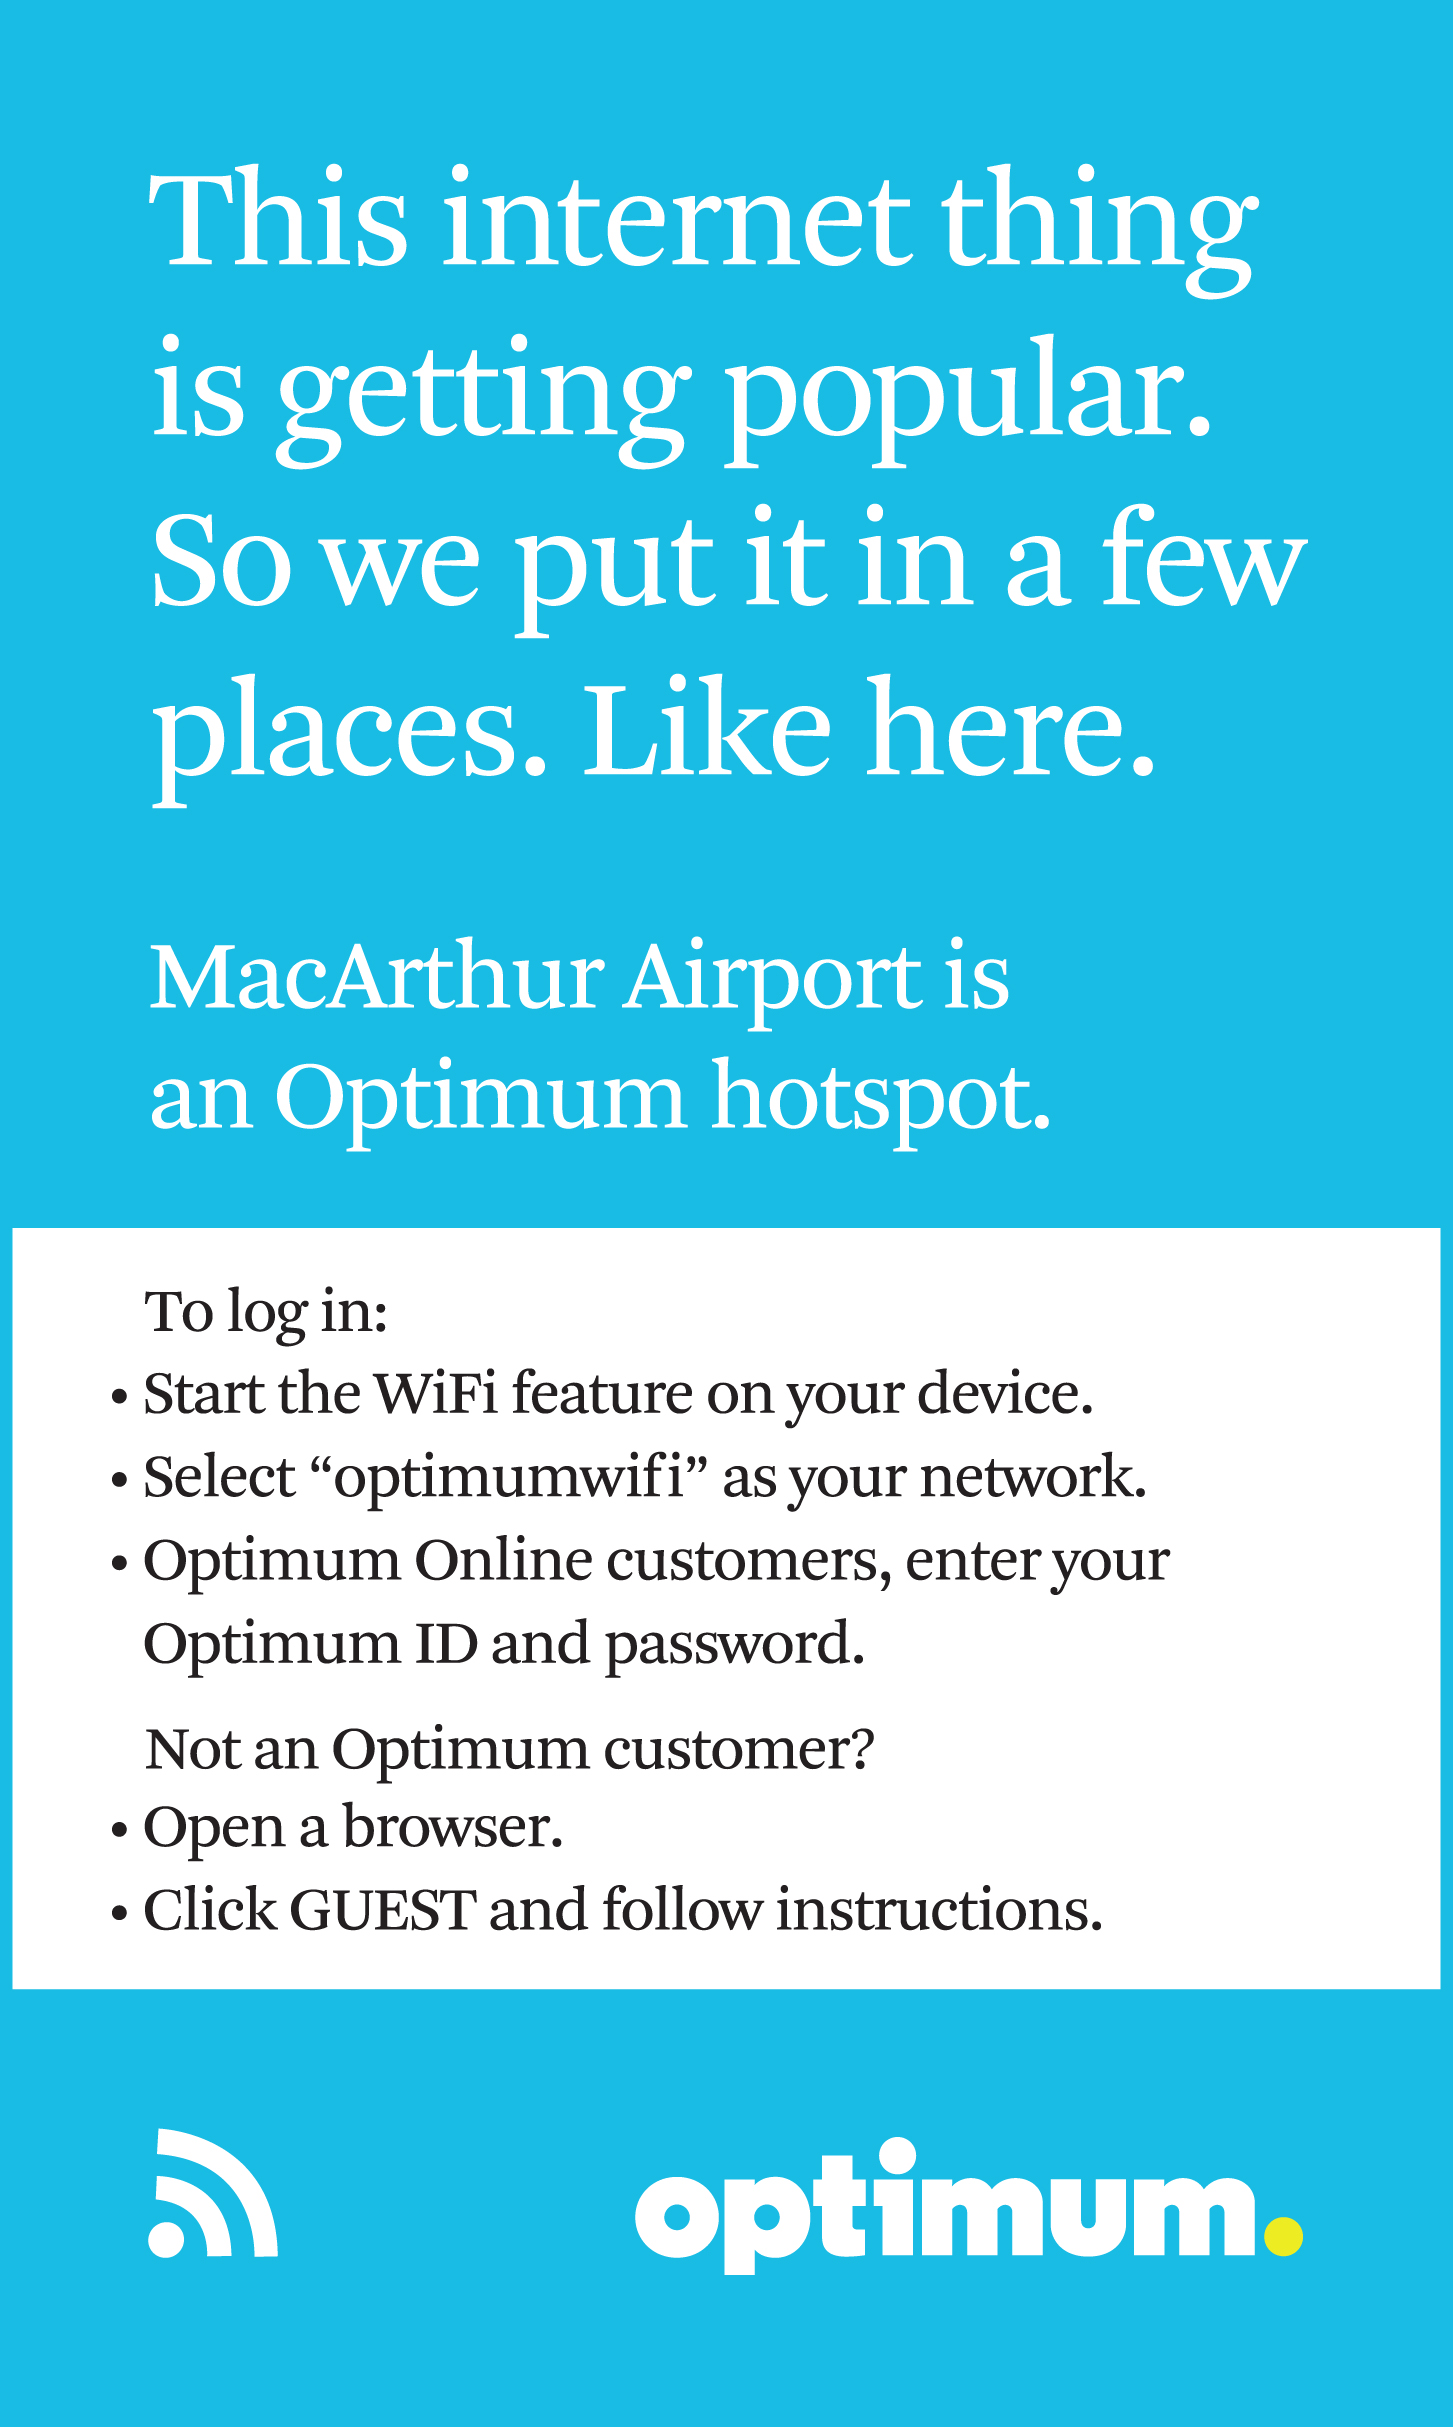 This image provides the instructions on how to login to Optimum's Wifi at the Airport